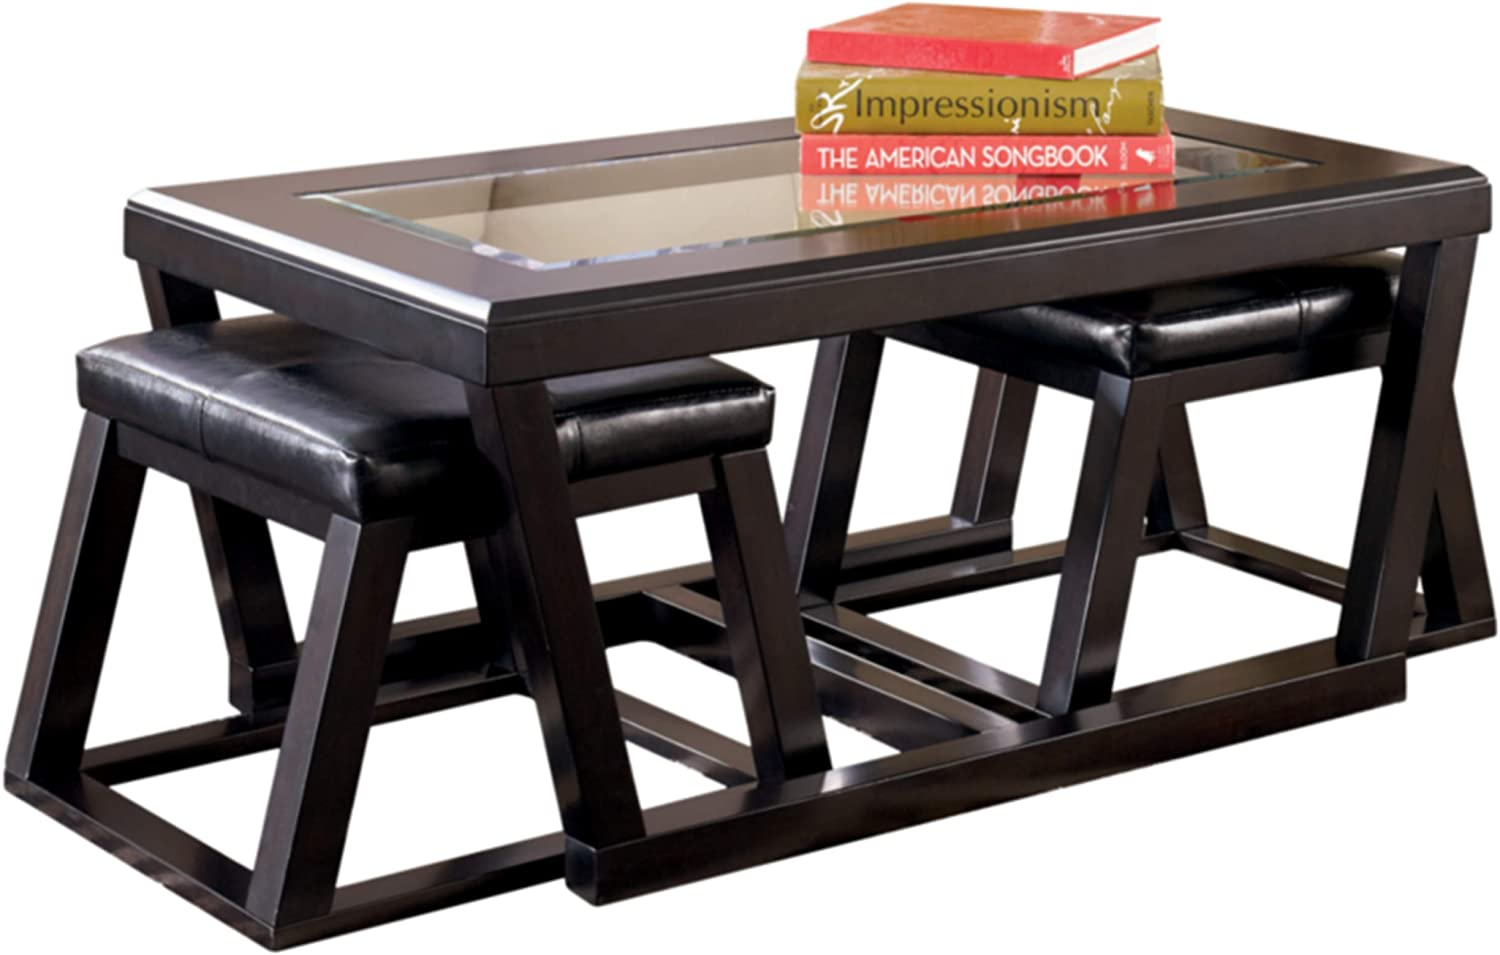 Signature Design by Ashley - Kelton Glass Top Coffee Table with 2 Stools - 3 Piece Set, Espresso Brown: Furniture & Decor